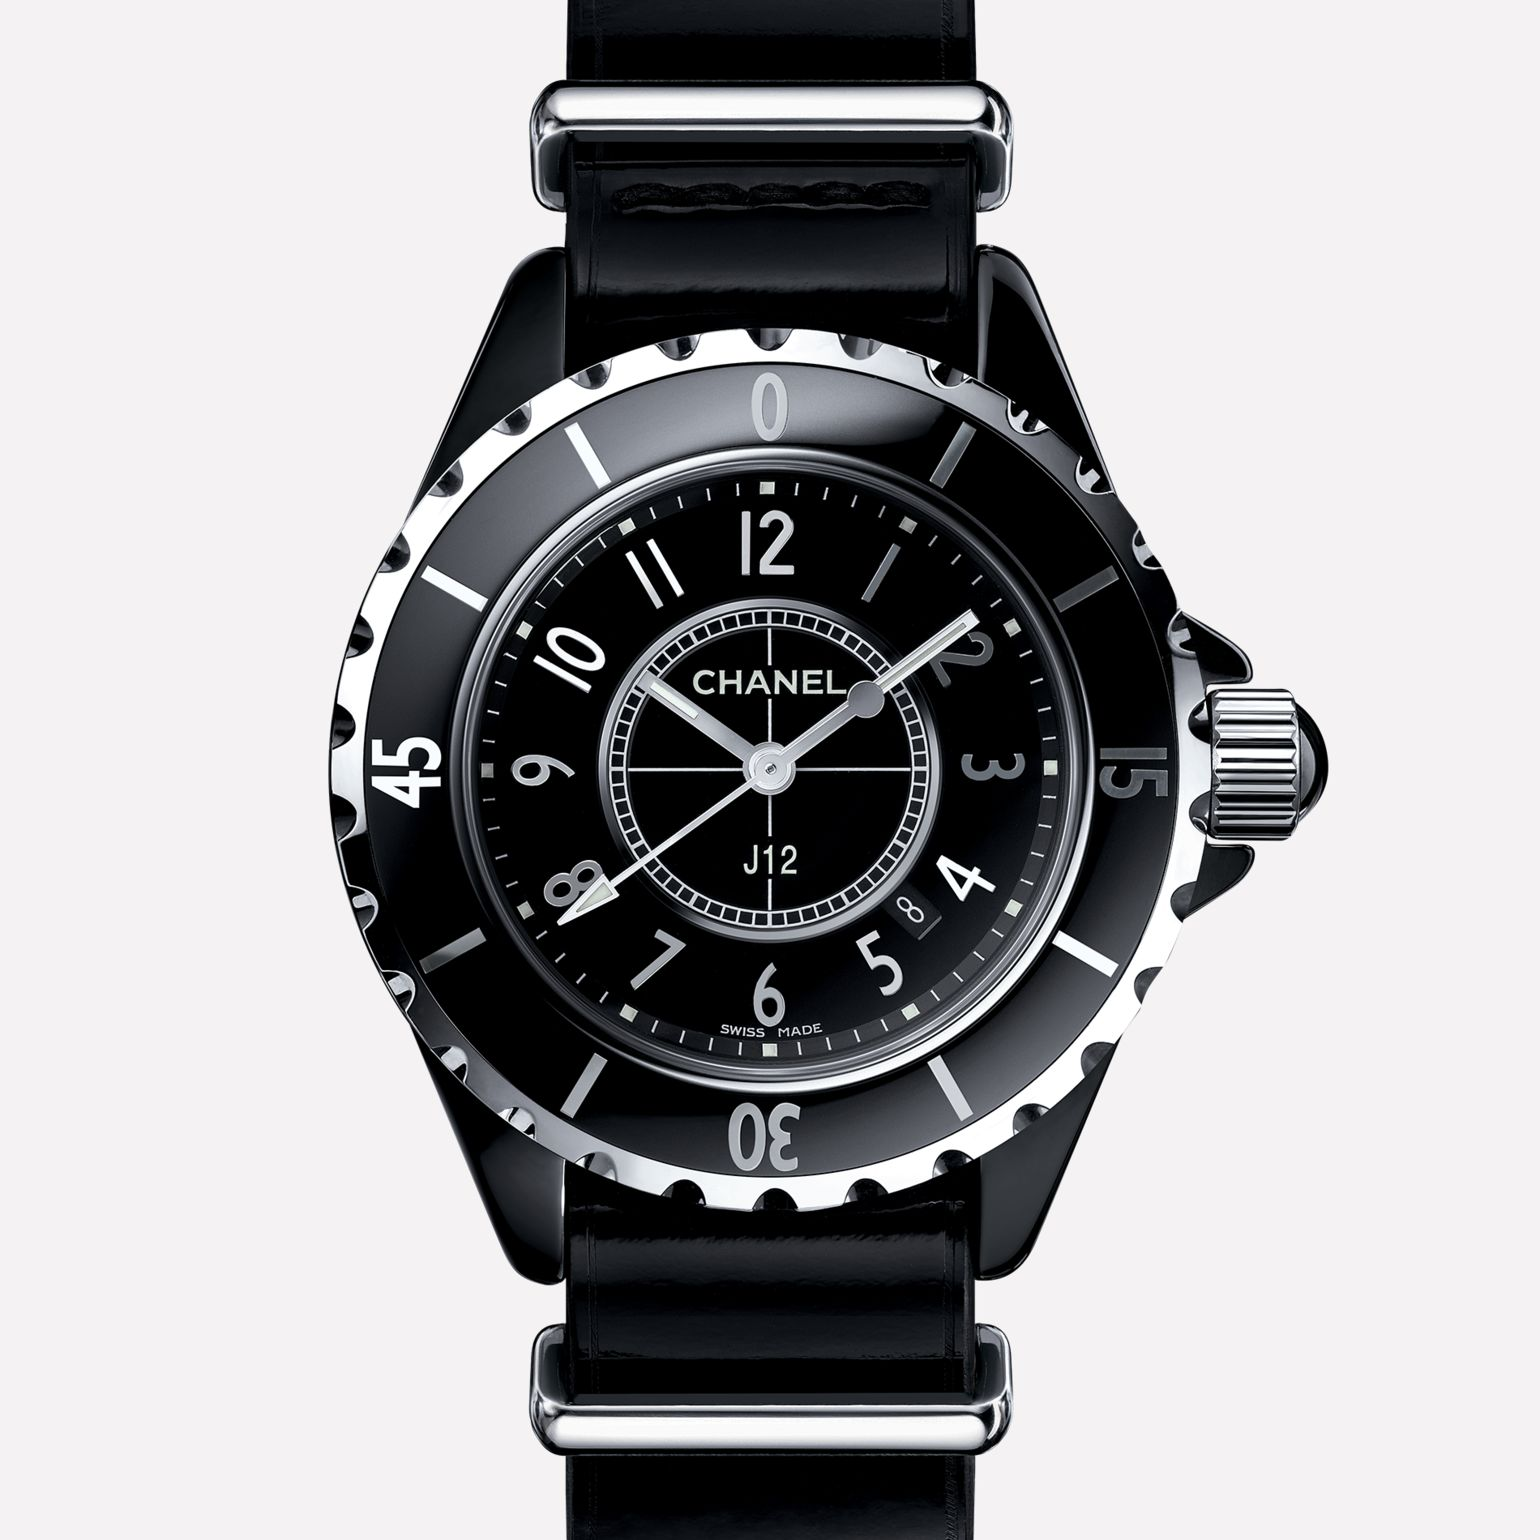 J12-G10 Gloss Black ceramic and steel, patent calfskin strap